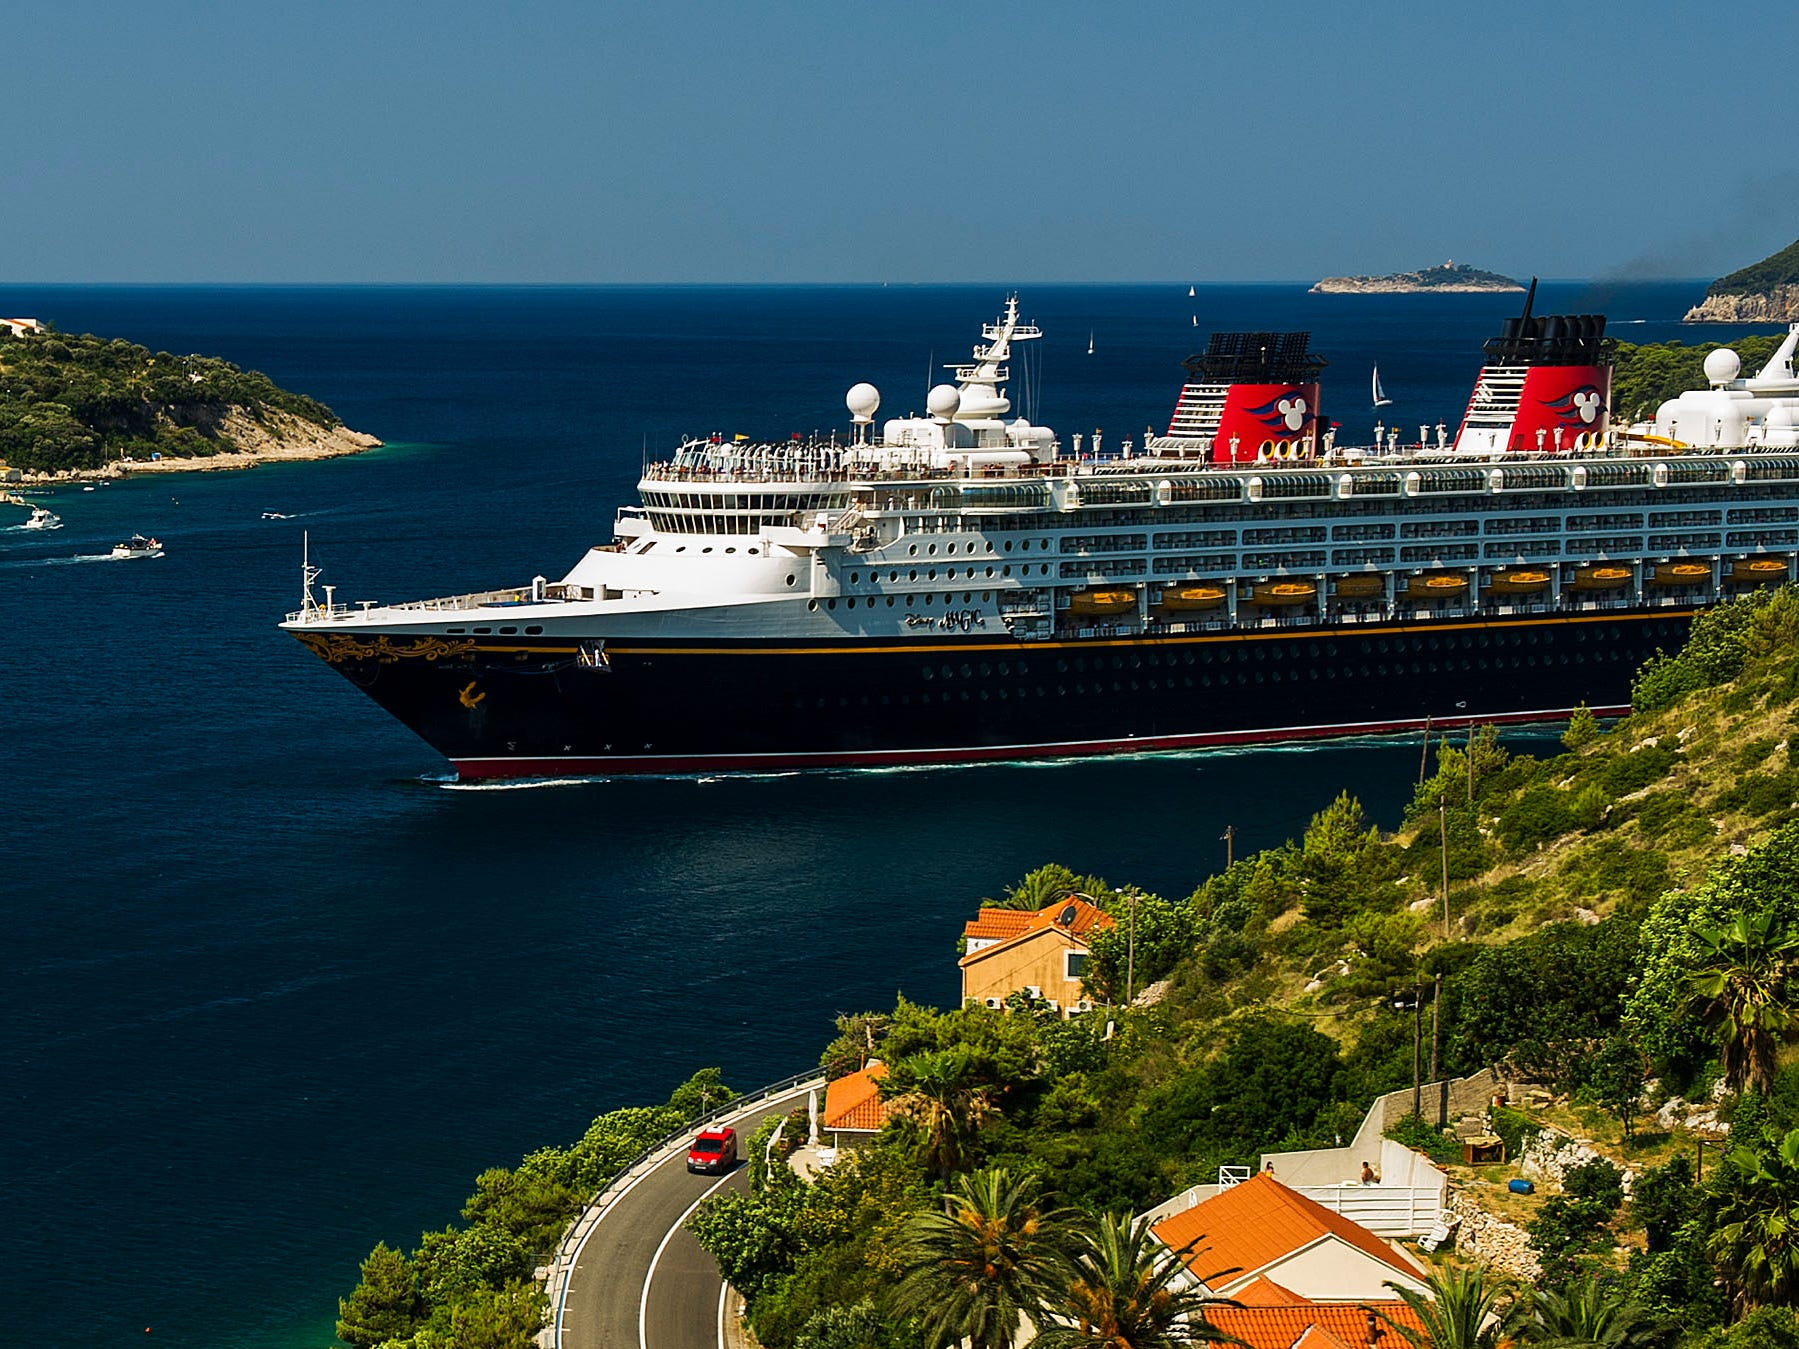 """After a five-year hiatus, the Disney Magic will return to Greece in summer 2020 as part of three special Mediterranean voyages departing from Rome. One of these sailings features a return to the """"Pearl of the Adriatic,"""" Dubrovnik, Croatia, for the first time in five years."""